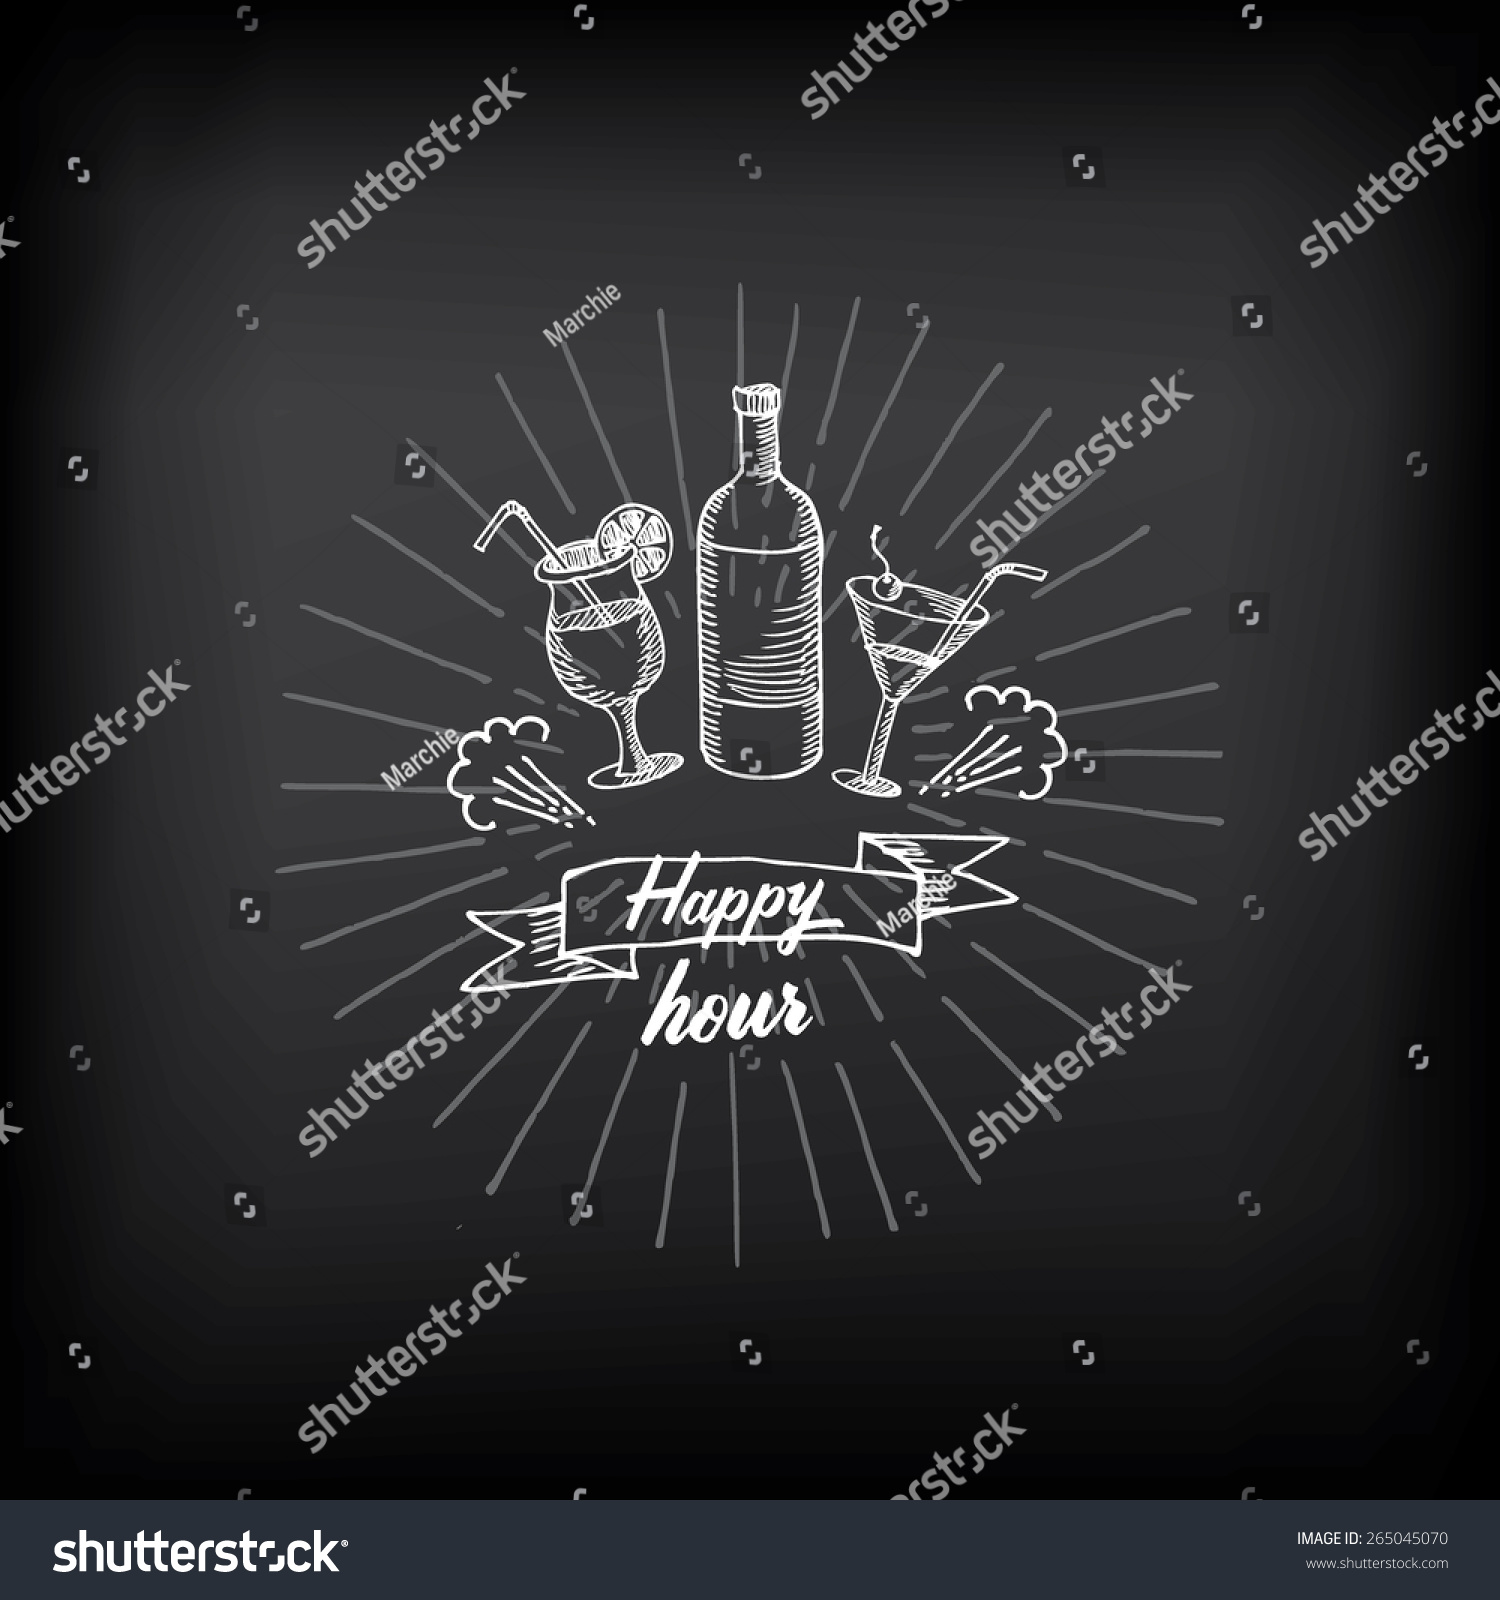 happy hour party invitation cocktail chalkboard stock vector happy hour party invitation cocktail chalkboard banner